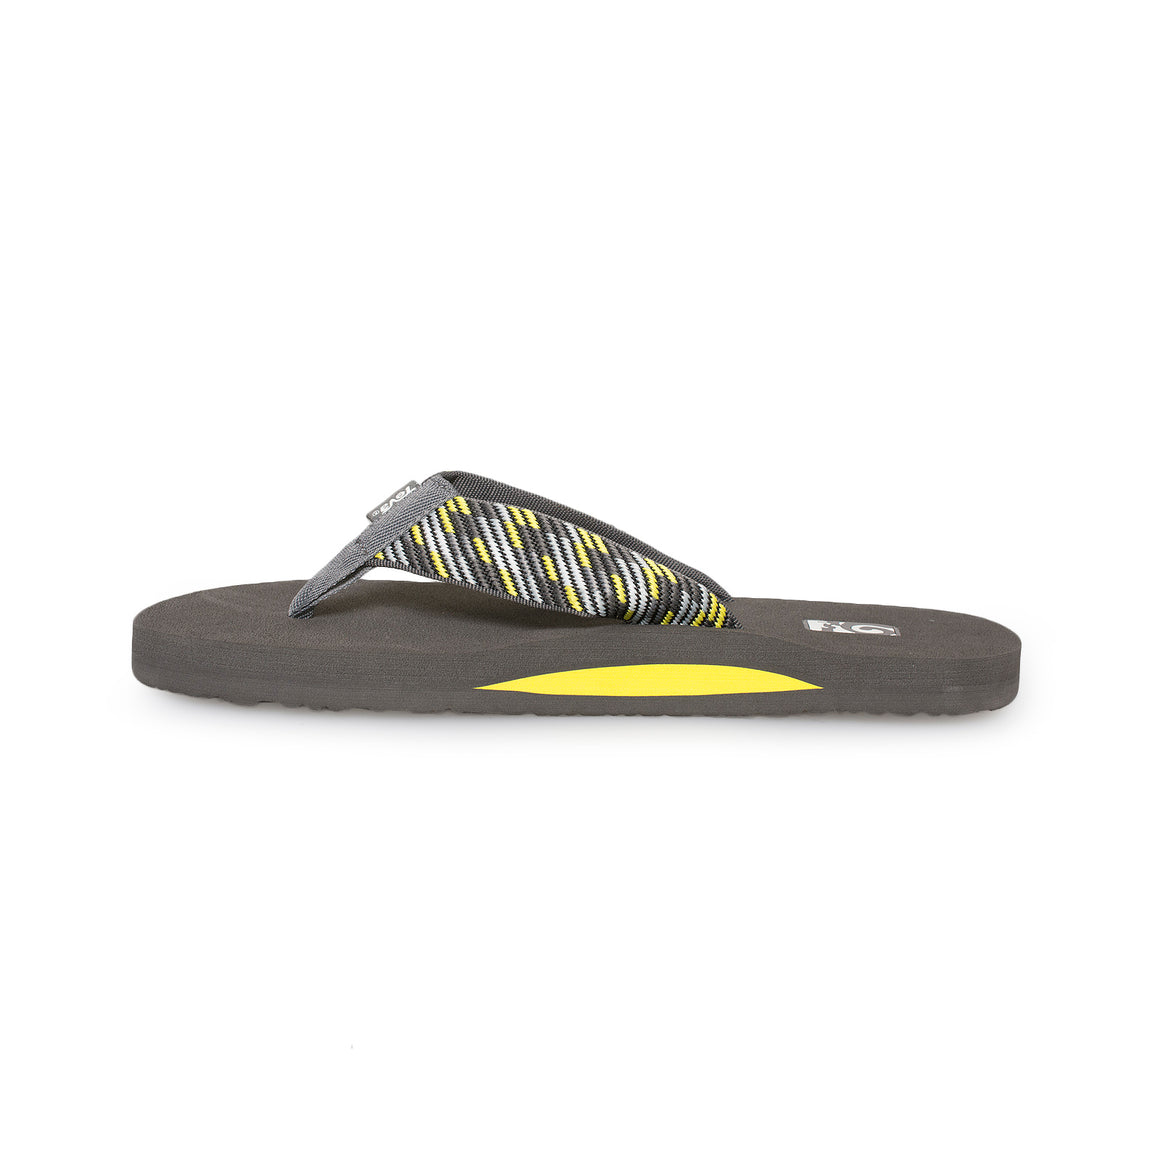 Teva Mush II Nitro Grey / Yellow Flip Flops - Men's